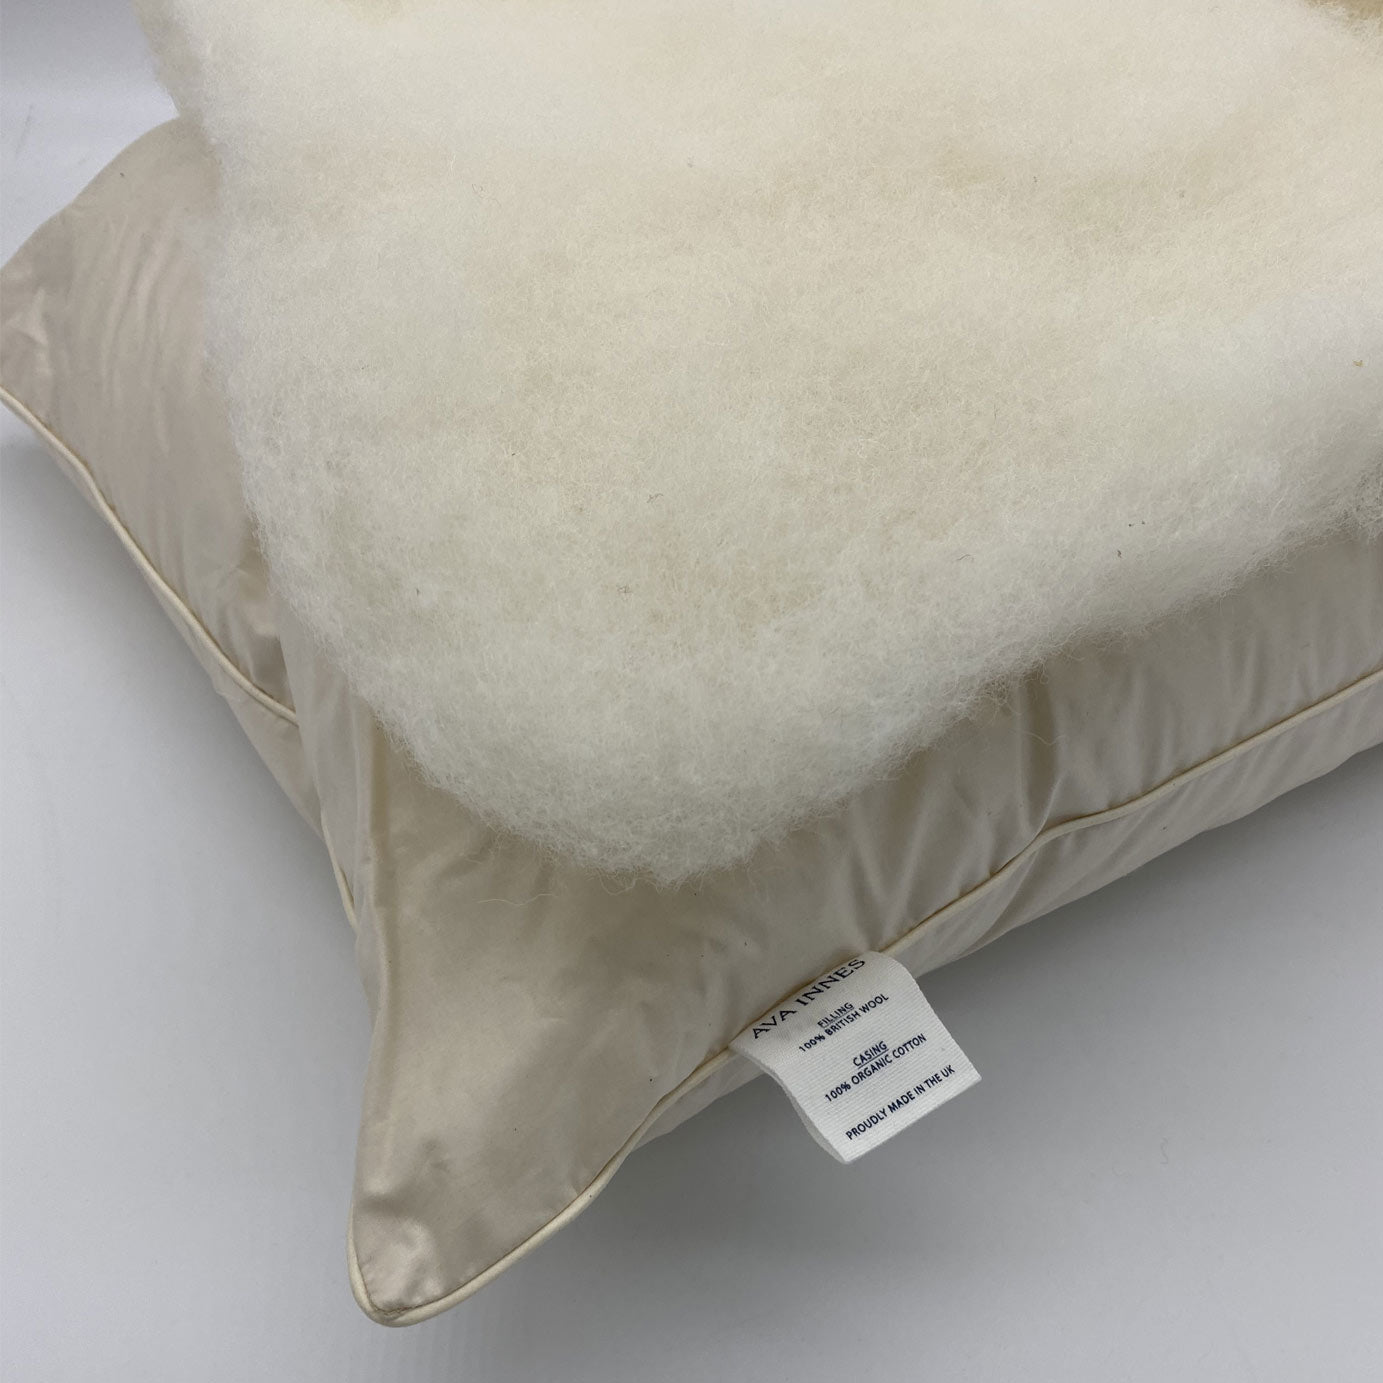 Luxury British Wool 'Soft & Slim' Bed Pillow